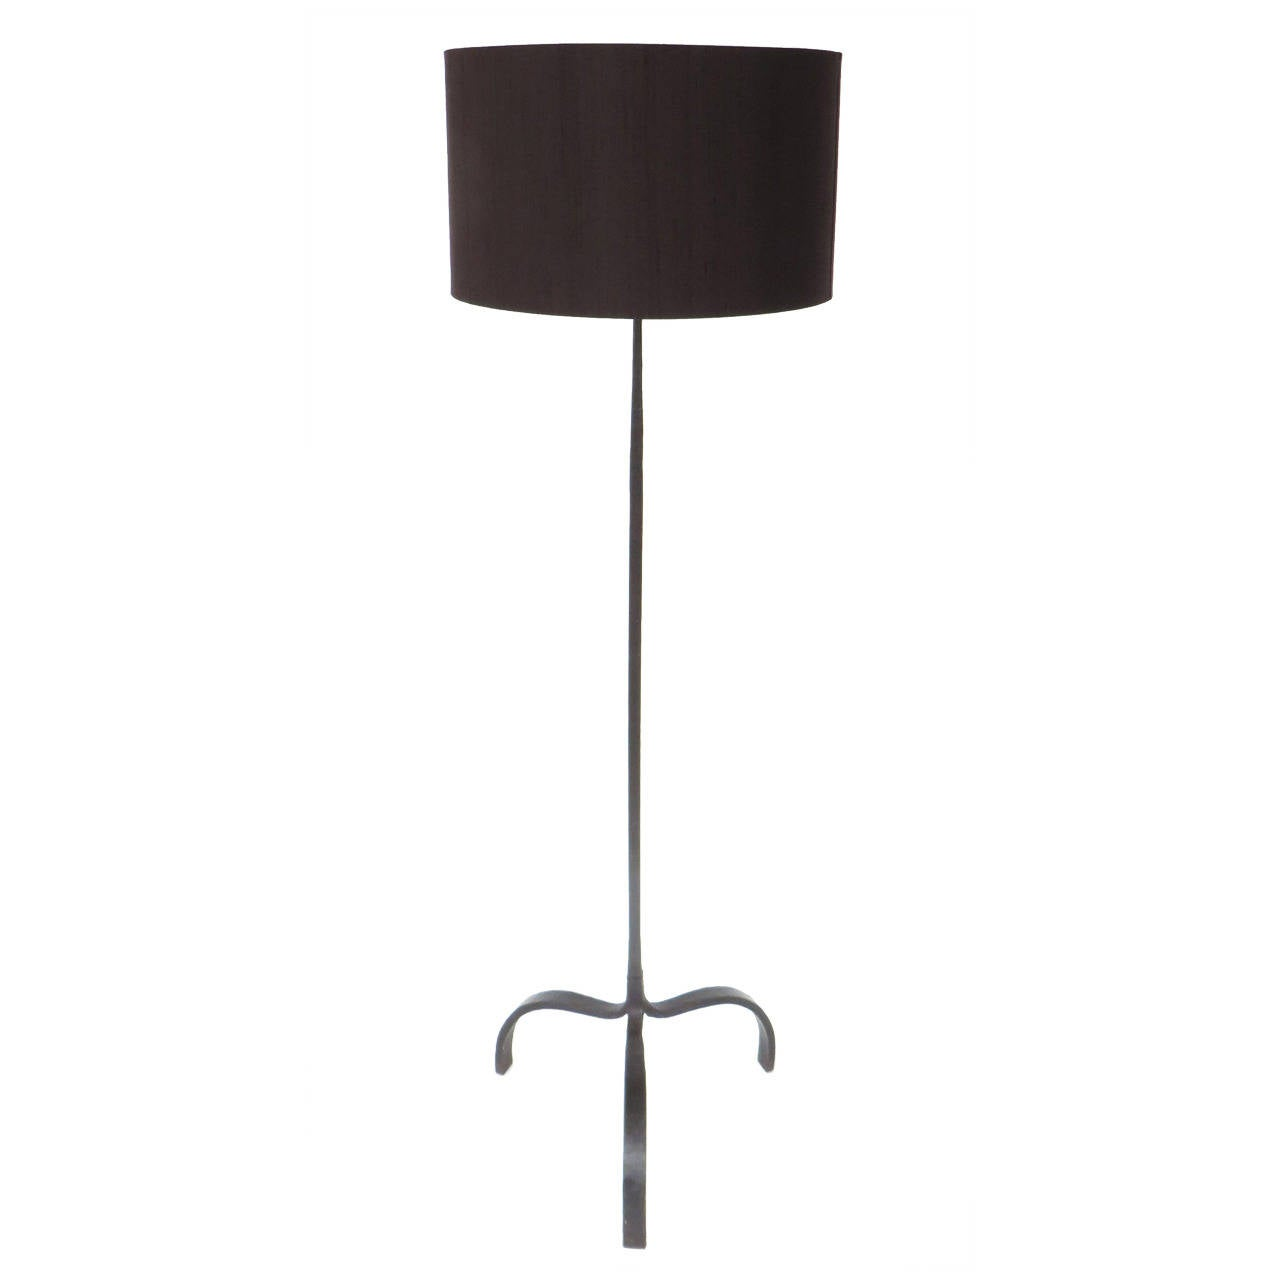 Minimalist Style Hand Wrought Iron French Floor Lamp with Shade